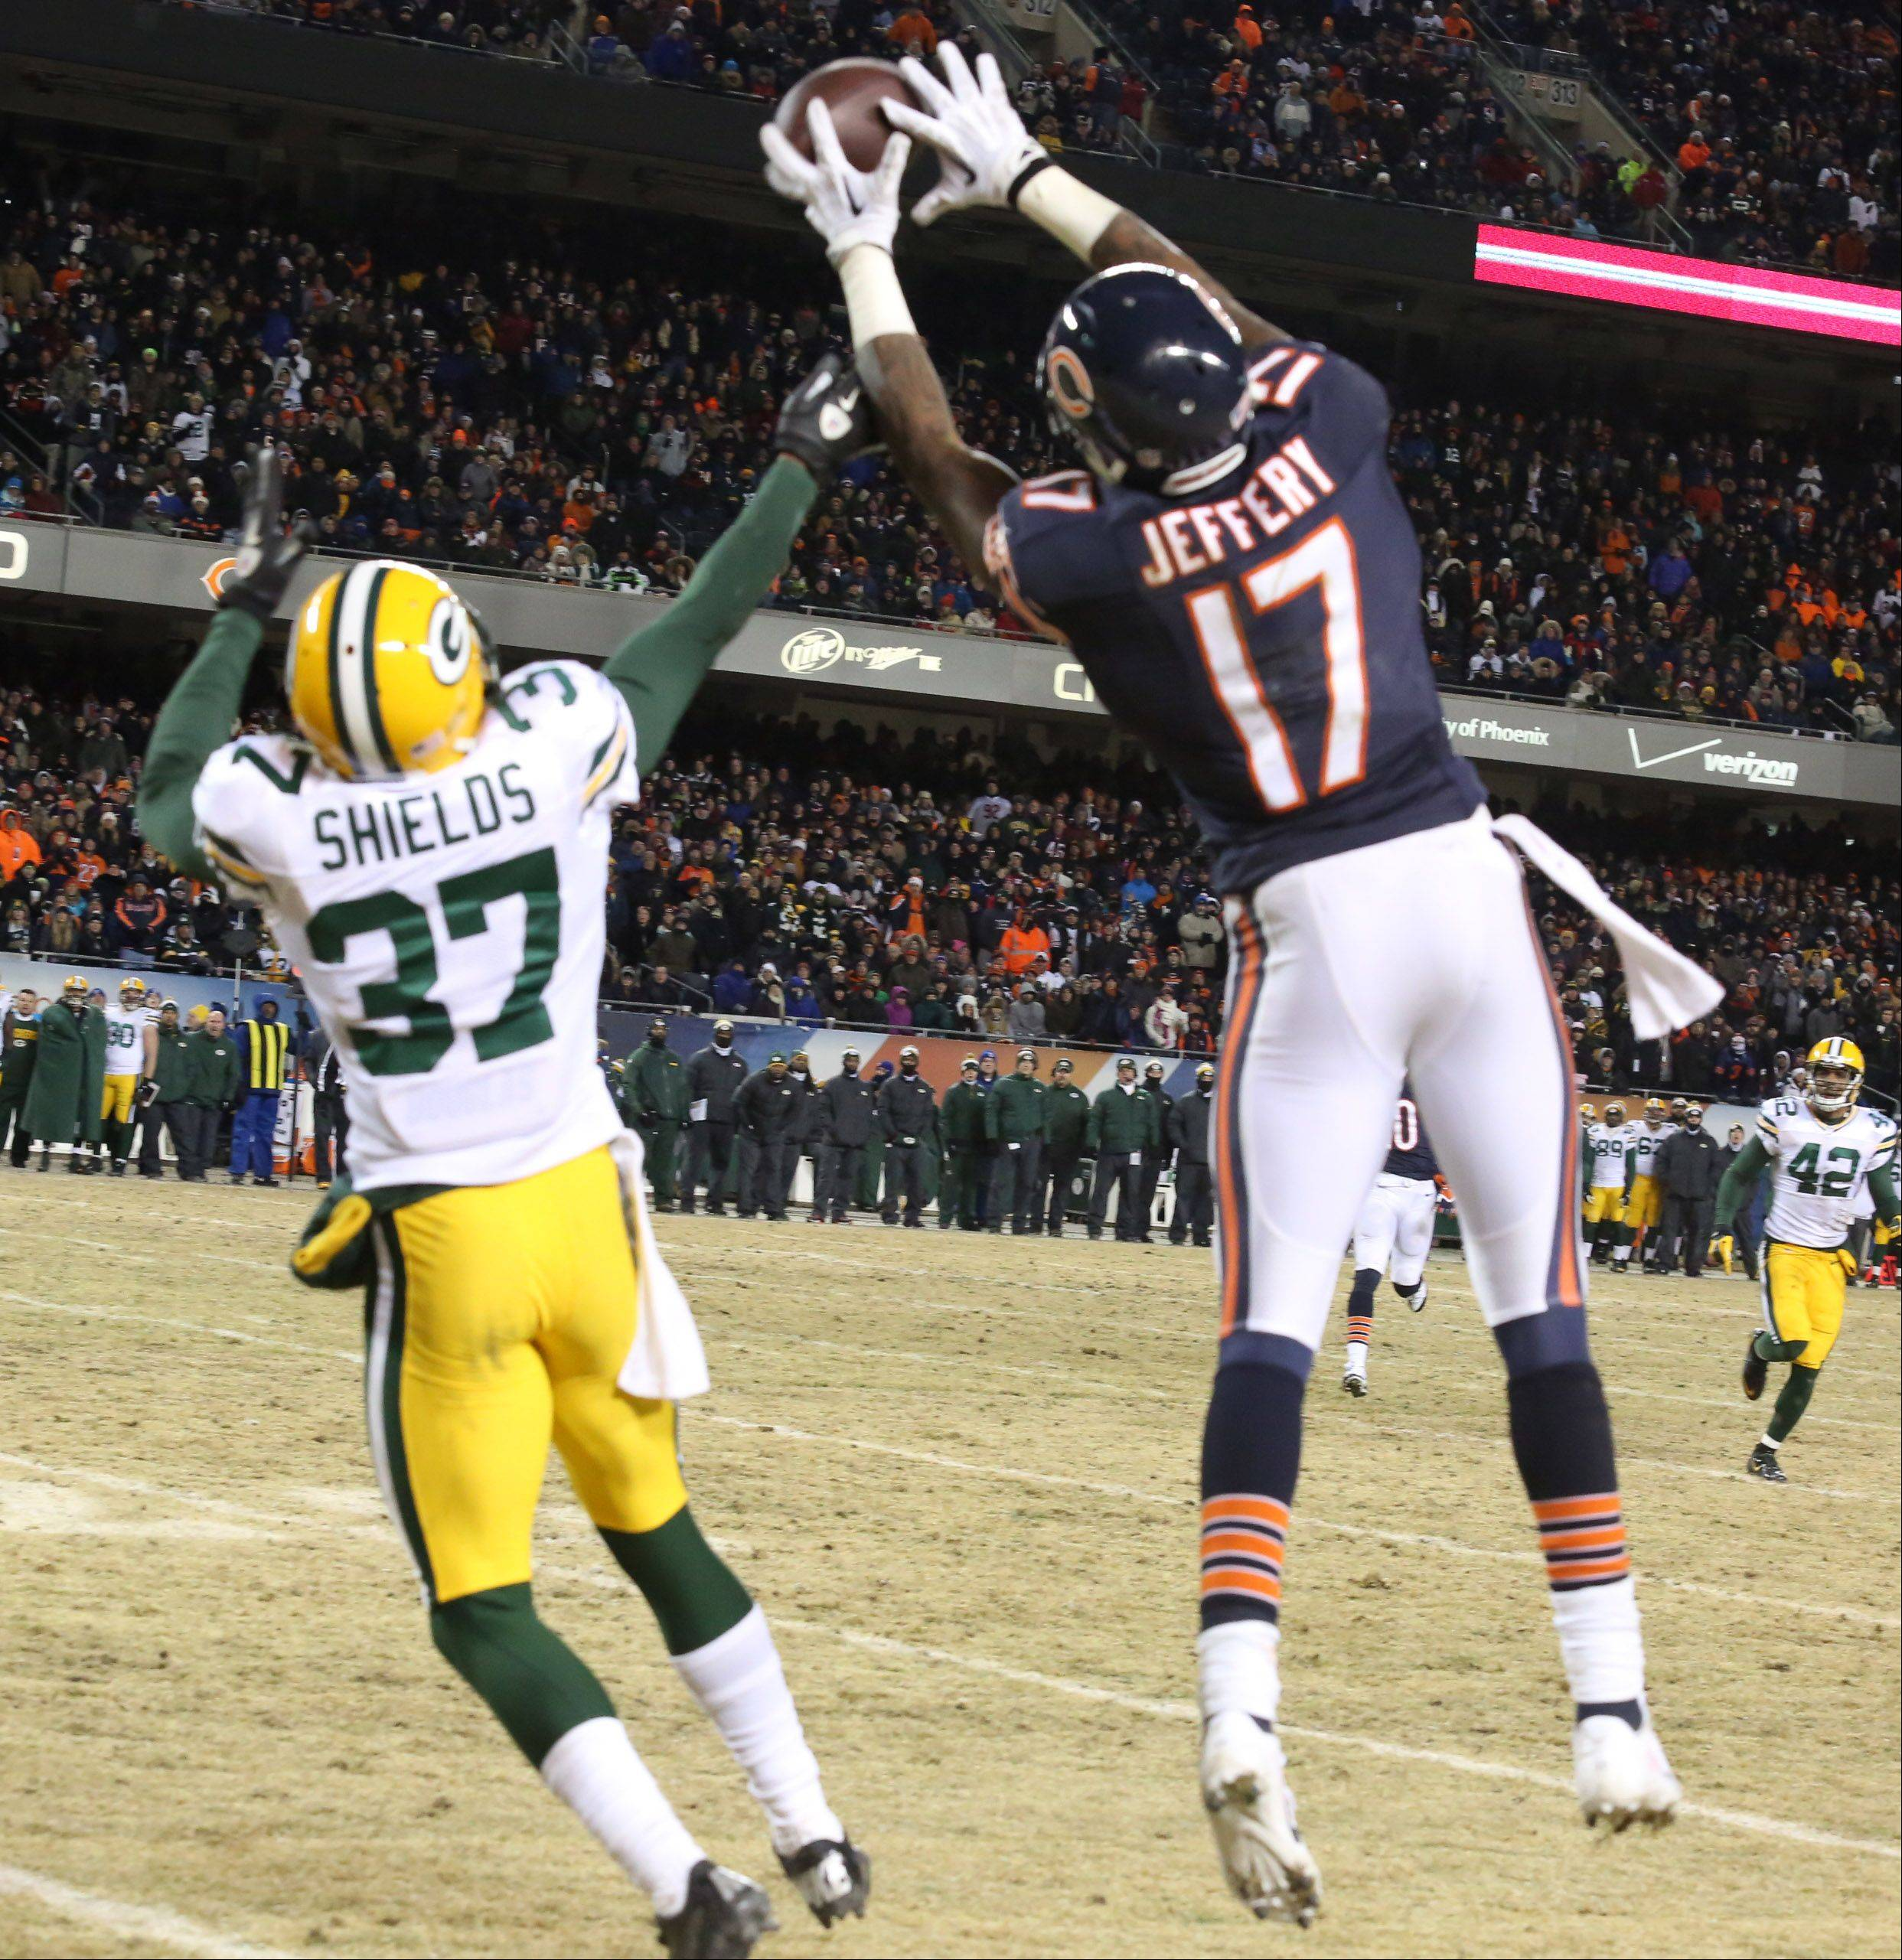 Chicago Bears wide receiver Alshon Jeffery missed catching this pass by Chicago Bears quarterback Jay Cutler while covered by Green Bay Packers cornerback Sam Shields on Sunday at Soldier Field in Chicago.